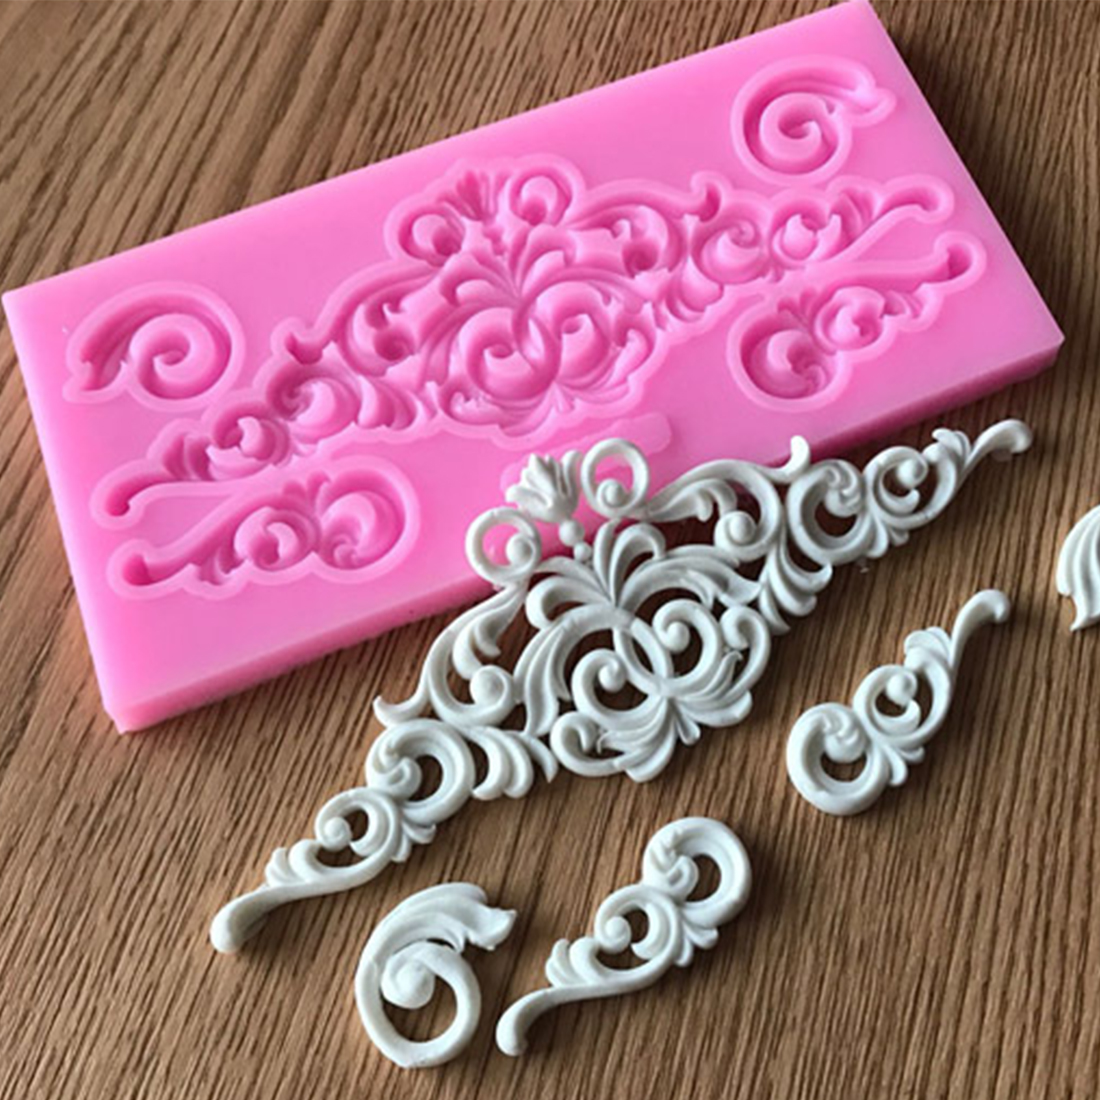 Hot Sale  DIY Sugar craft Cake Vintage Relief Border Silicone Mold Fondant Mold Cake decorating Tools Gum paste Mold(China)